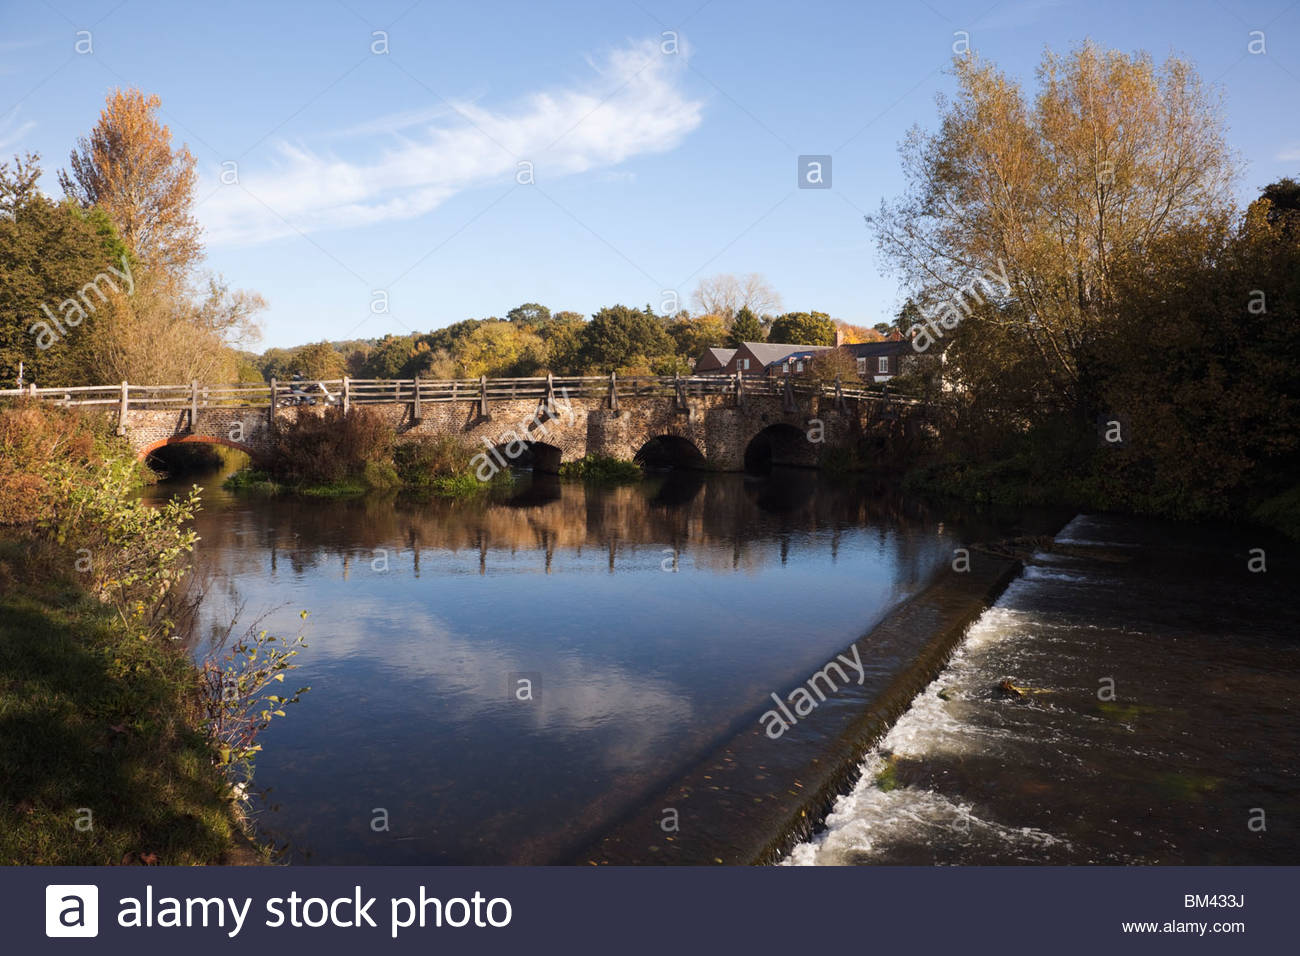 Tilford Surrey England UK Europe. River Wey and old east bridge in autumn - Stock Image